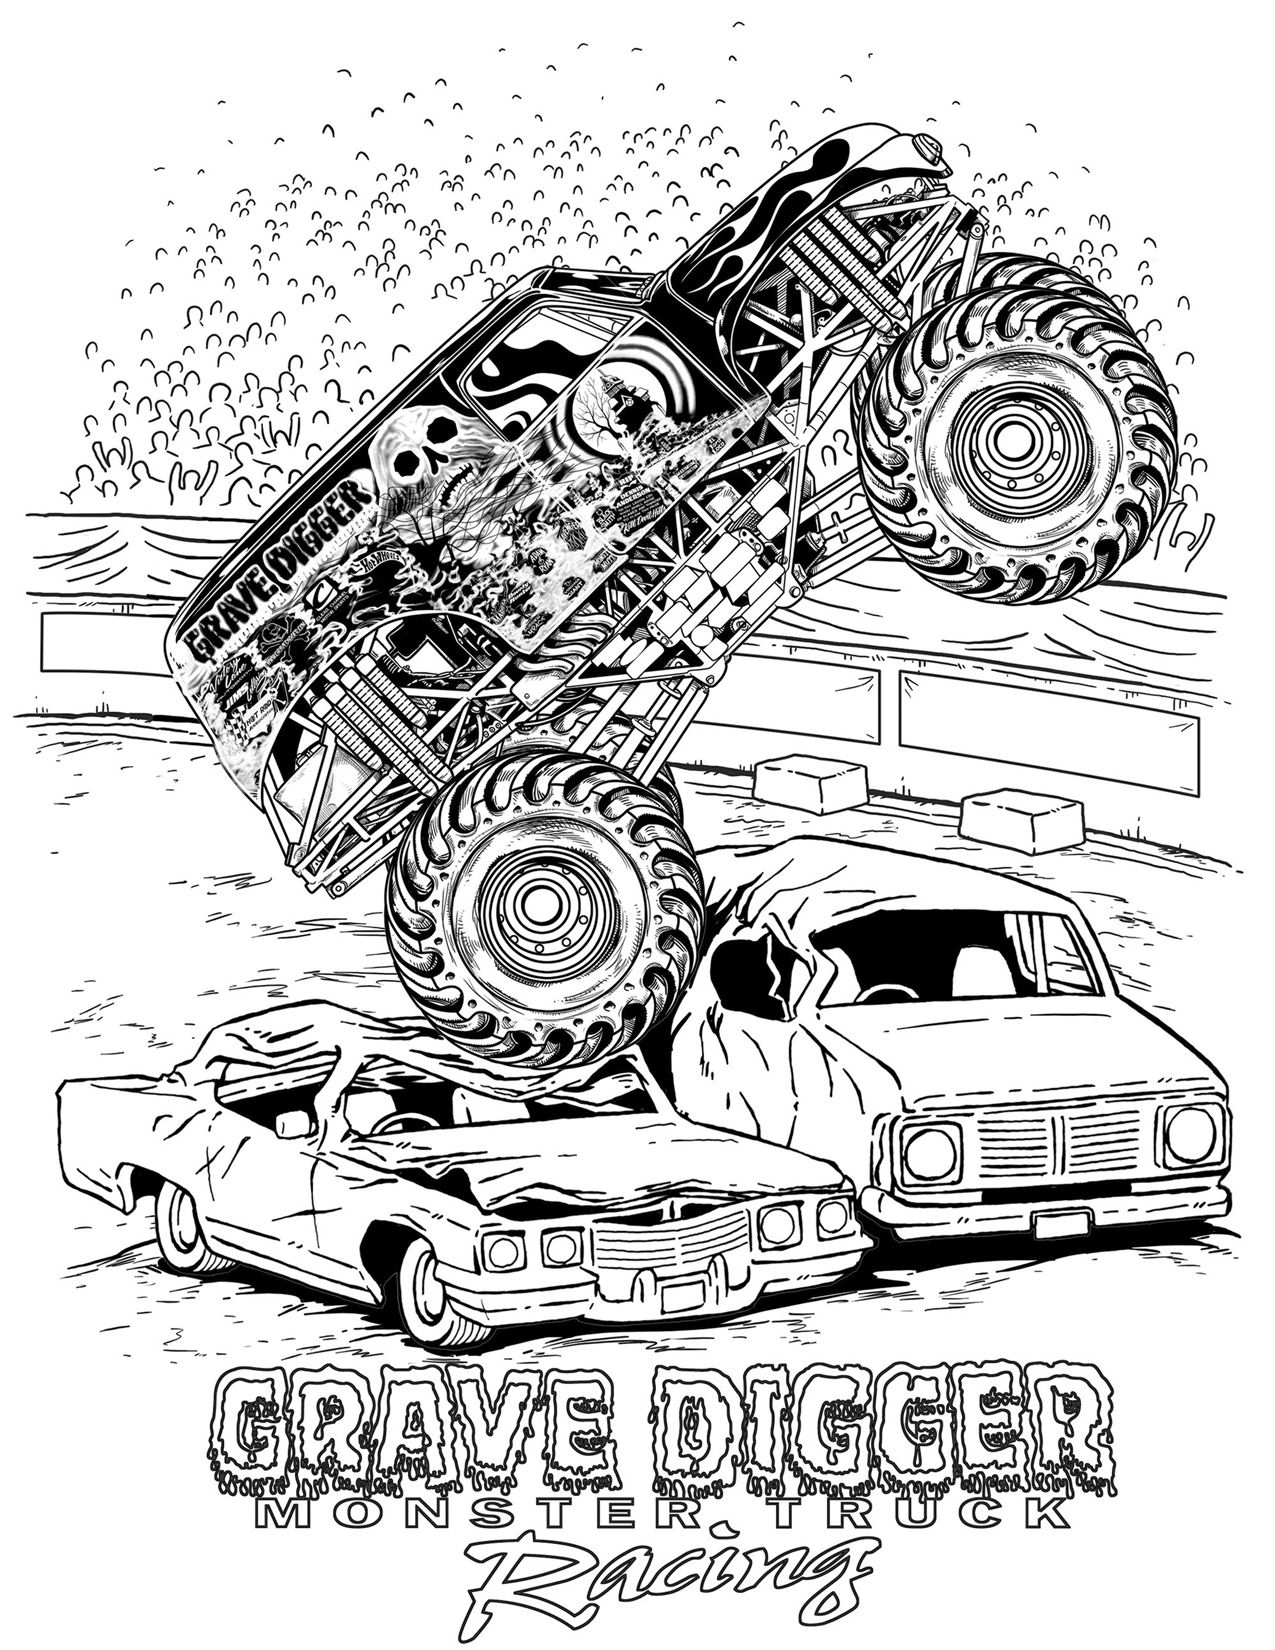 Coloring pictures of cars truck tractors - Monster Truck Coloring Pages Letscoloringpages Com Grave Digger Coloring Pages